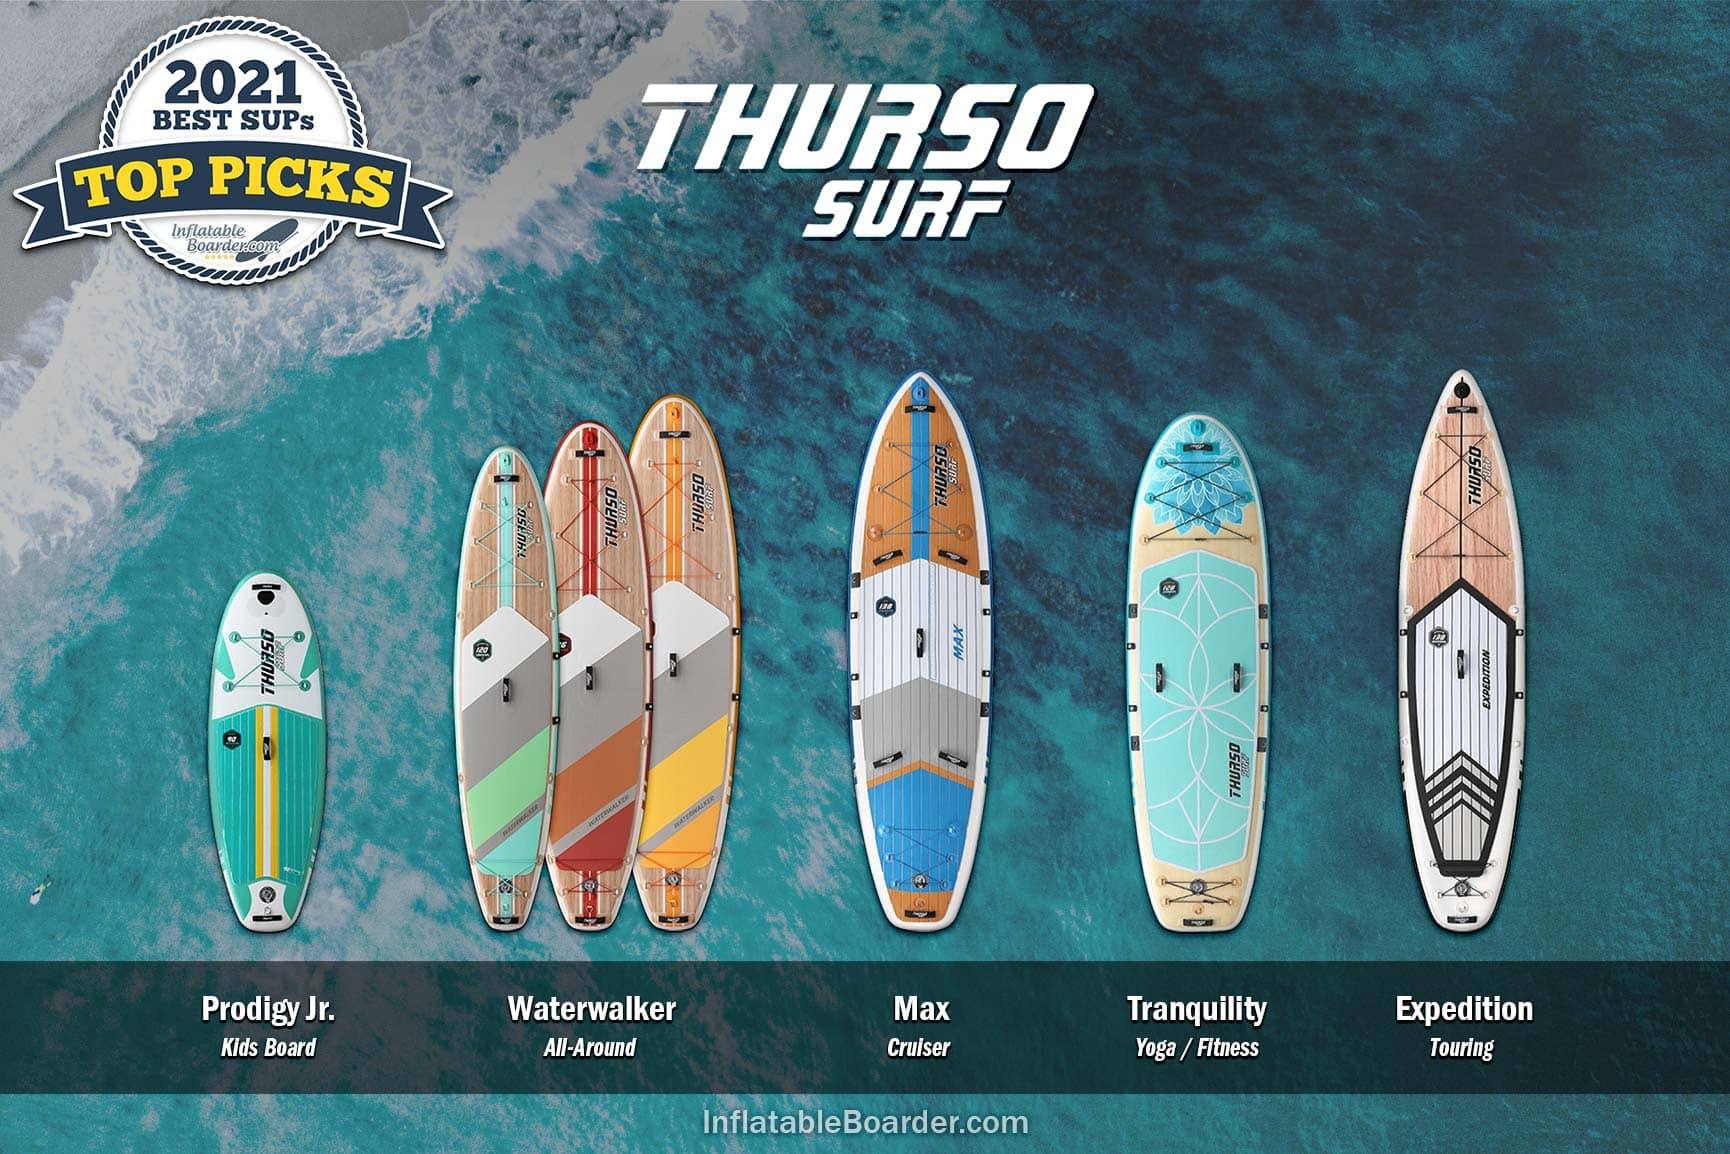 Thurso Surf inflatable paddle boards compared: Includes Waterwalker, Prodigy Jr., Max, Tranquility, and Expedition SUPs.